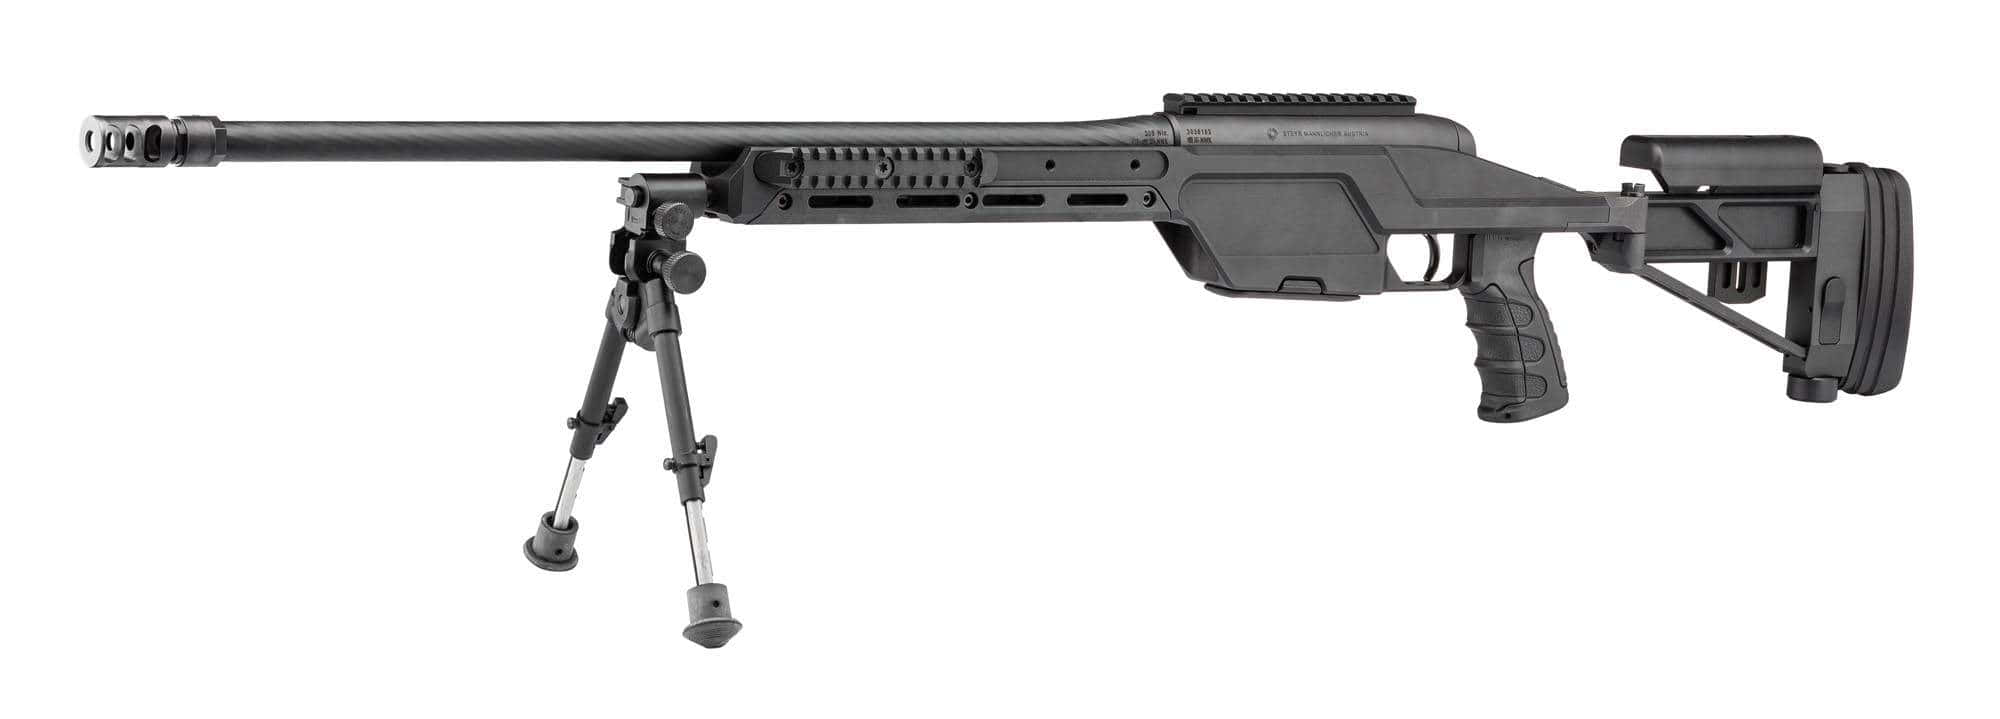 STEYR SSG08 Synt - Calibre 300 W - can 600 mm - SM813438L